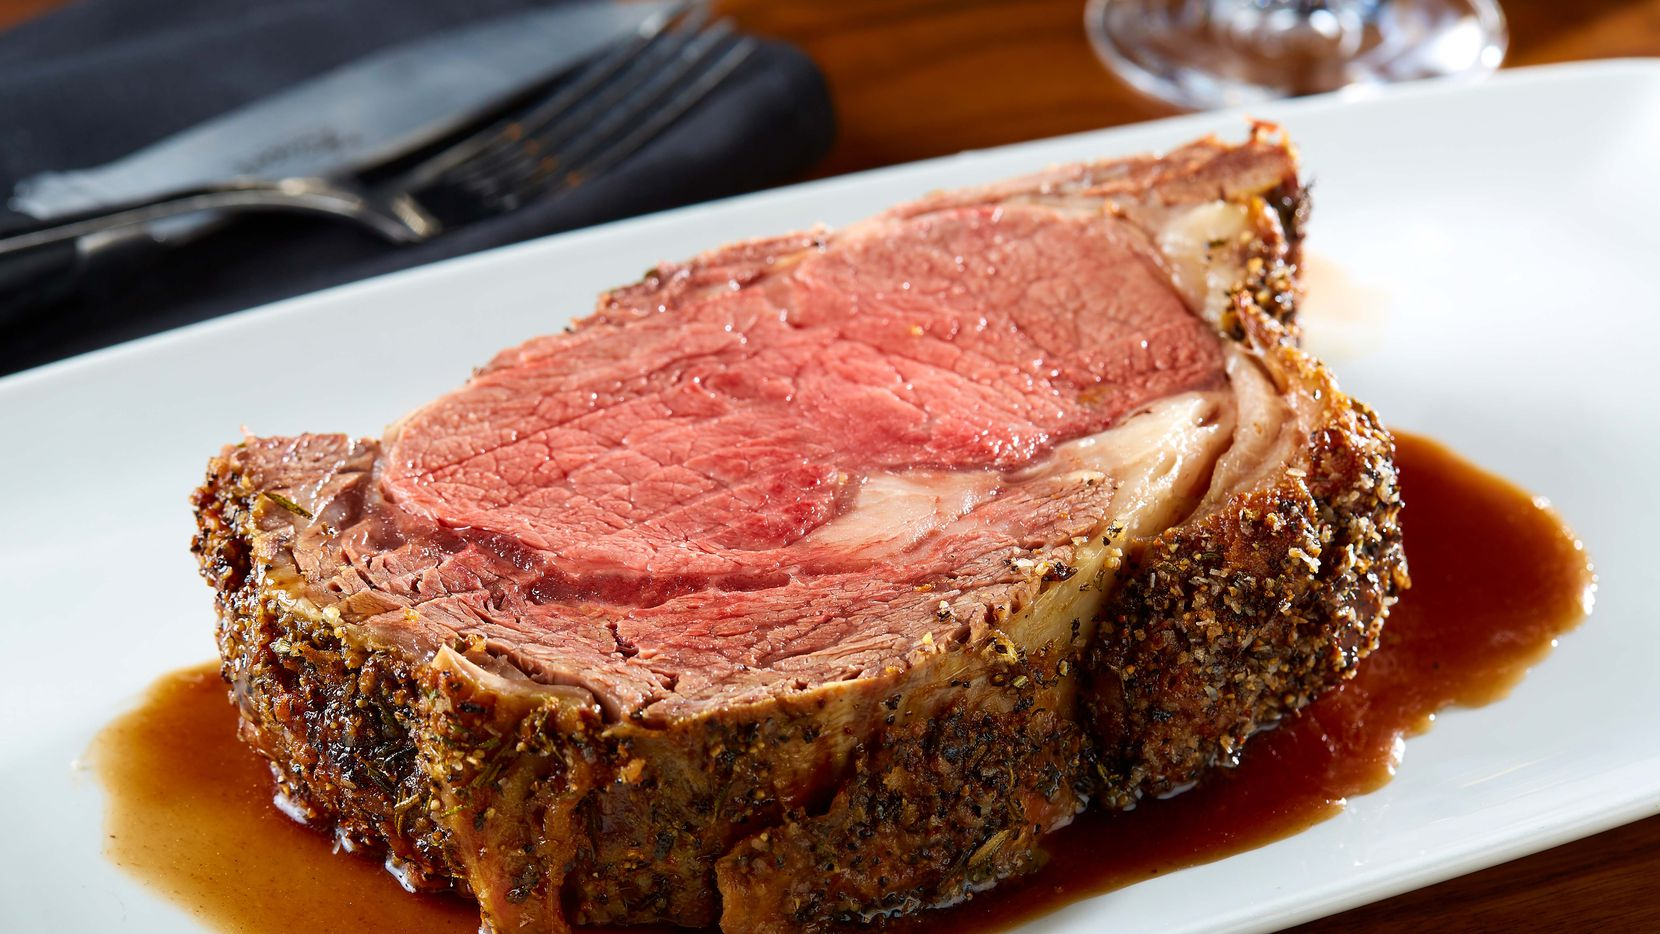 Del Frisco s Double Eagle Steak House is serving slow-roasted prime rib as well as savory hand-cut steaks all day long this Easter.